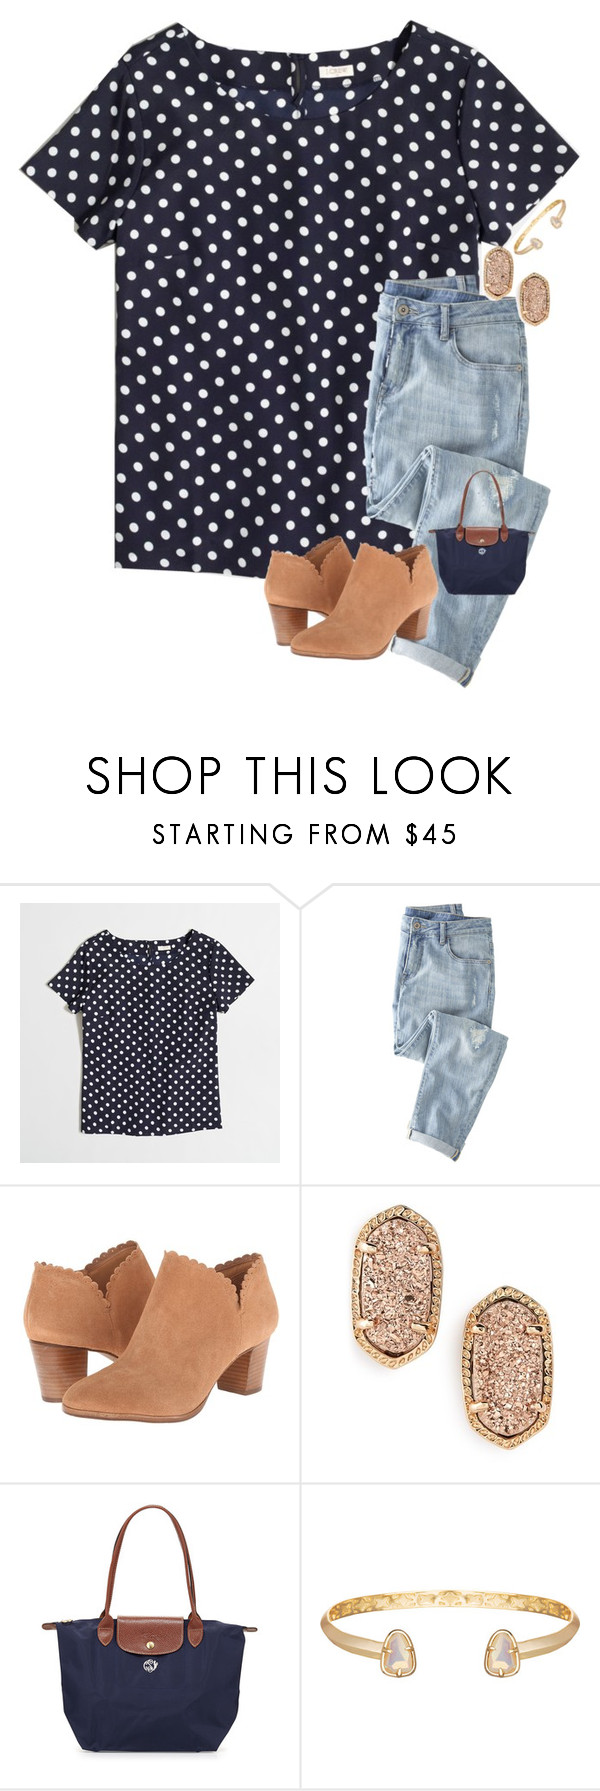 """going to see krampus"" by skmorris18 ❤ liked on Polyvore featuring J.Crew, Wrap, Jack Rogers, Kendra Scott and Longchamp"